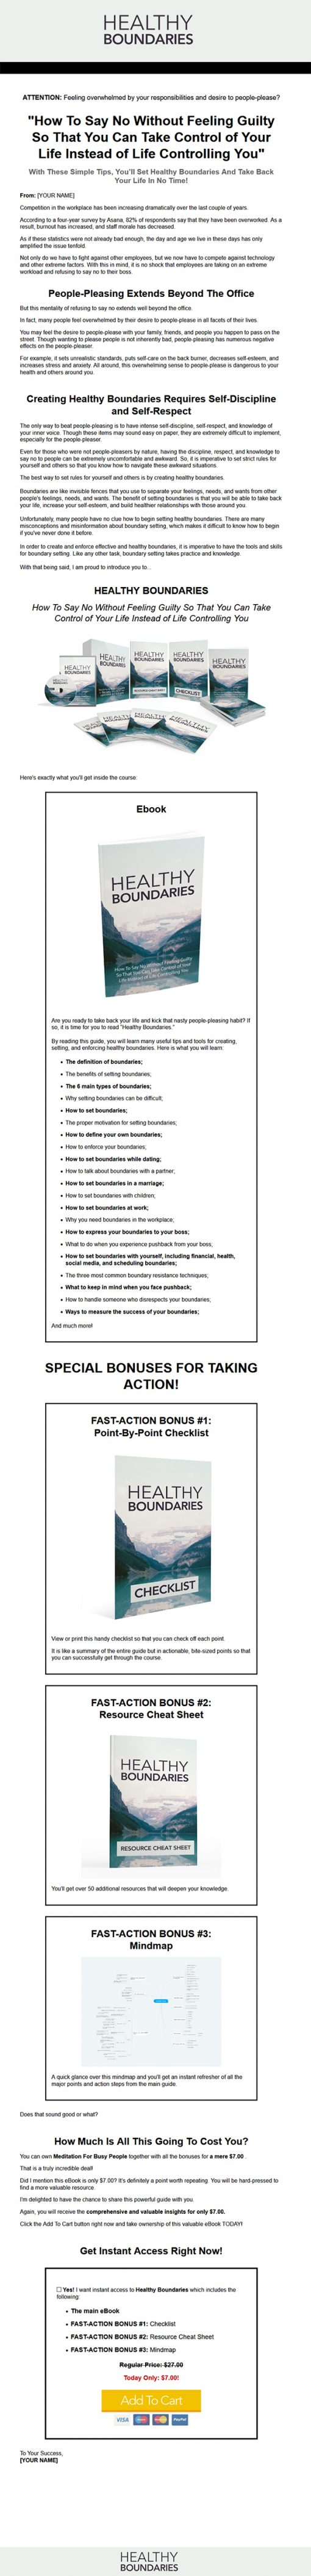 Healthy Boundaries in Life Ebook and Videos MRR